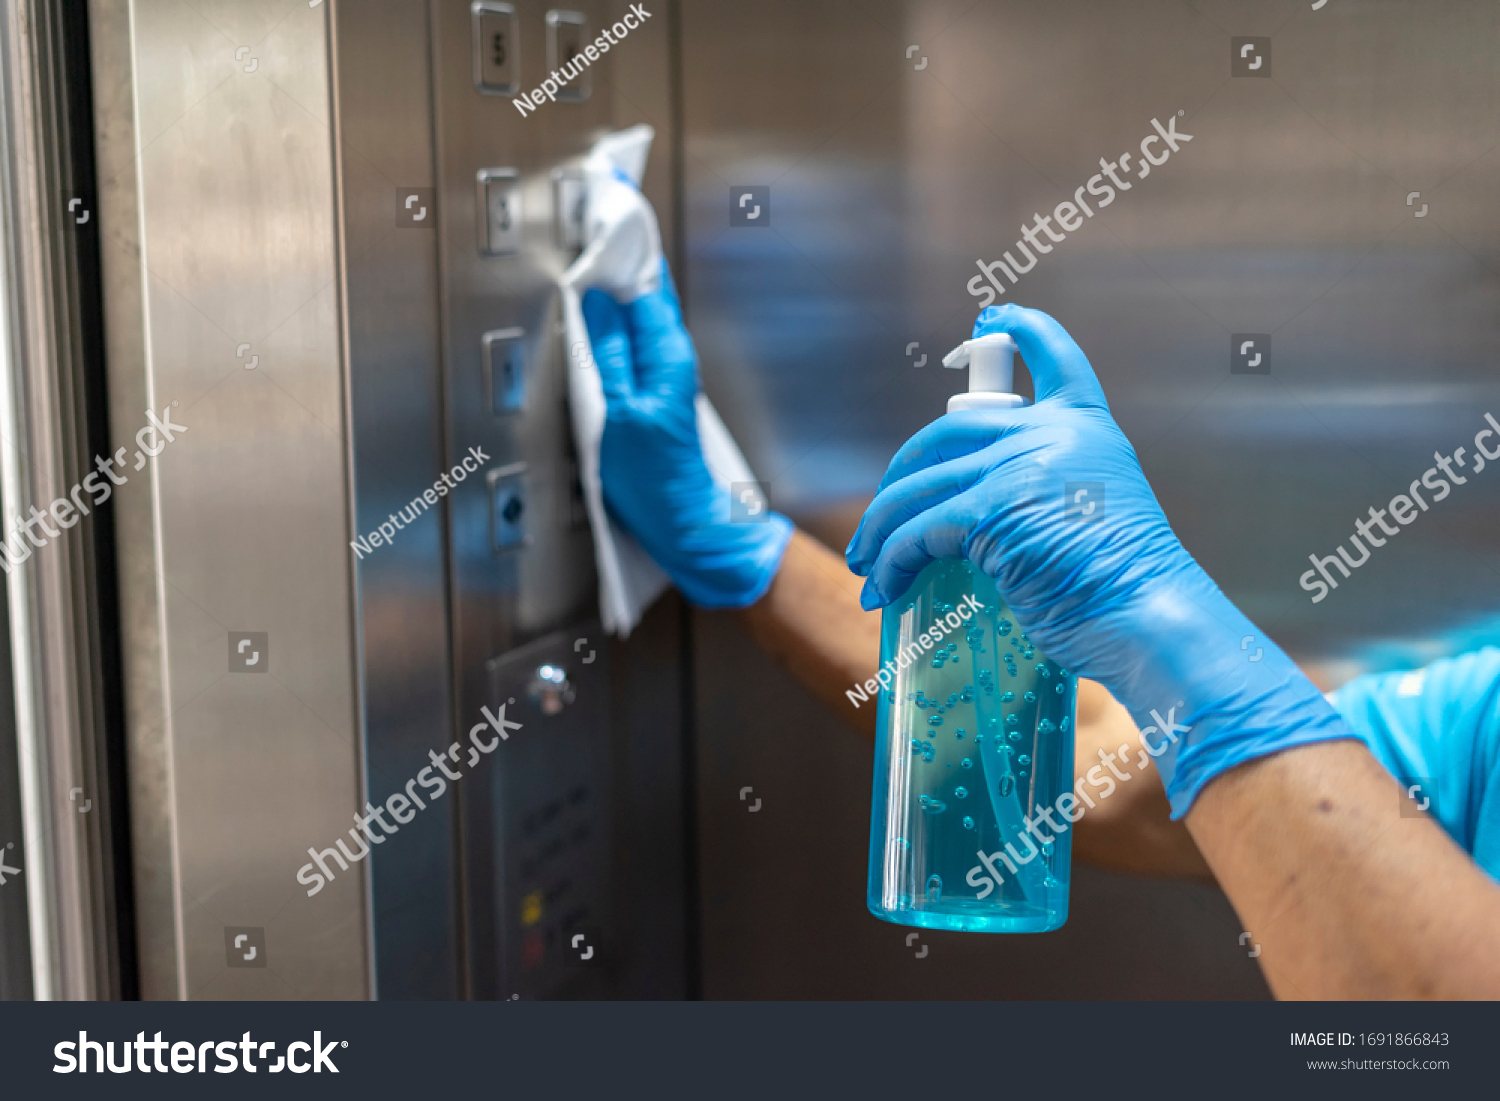 Closeup of old staff hand using wet wipe cleaning an elevator push button control panel with a blue sanitizer bottle.Disinfection,cleanliness and healthcare,Anti Corona virus,COVID-19.Selective focus. #1691866843